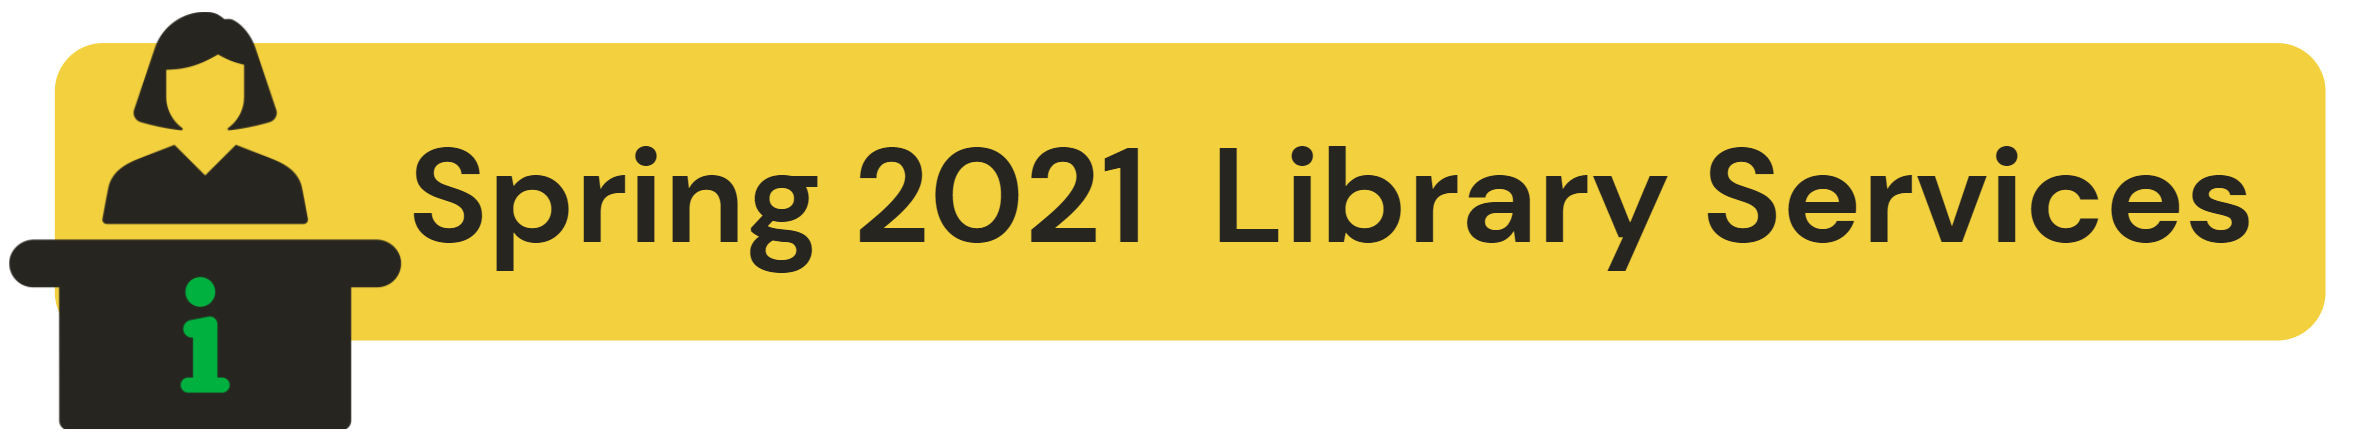 Header Image: yellow background with black text that says Spring 2021 Library Services. Cartoon image of a person at a help desk.